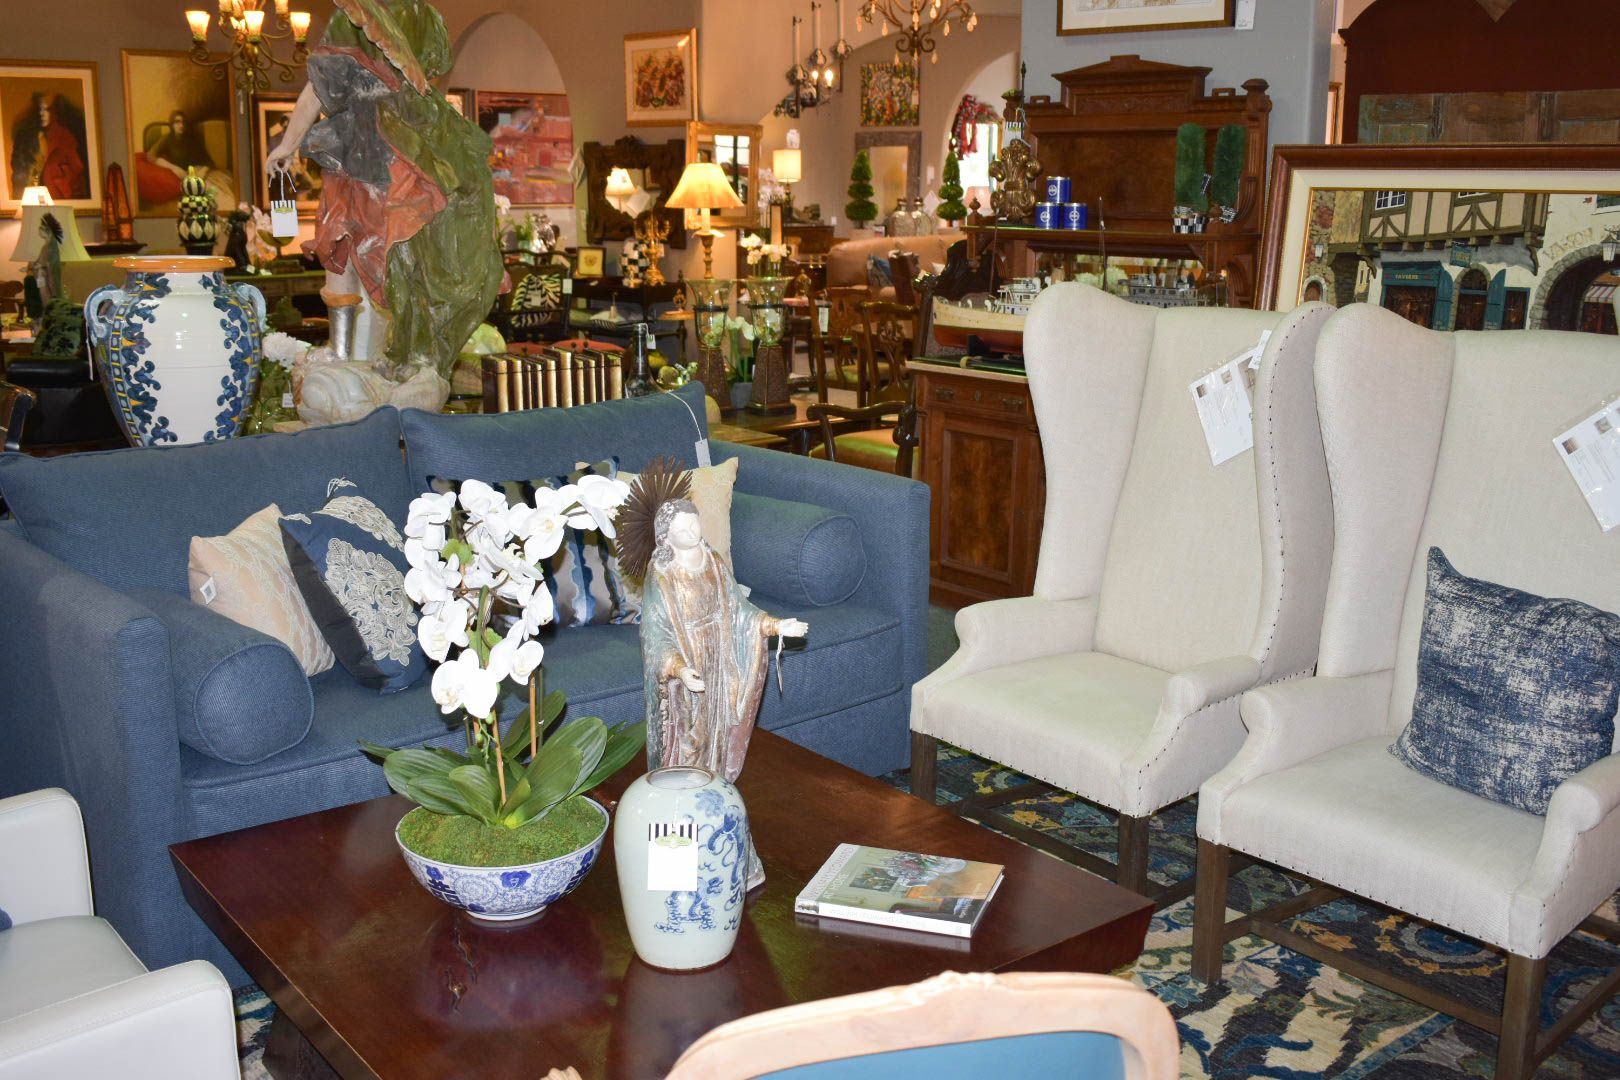 Great Scottsdale Furniture Consignment, Antiques, Artwork And Home Accessories.